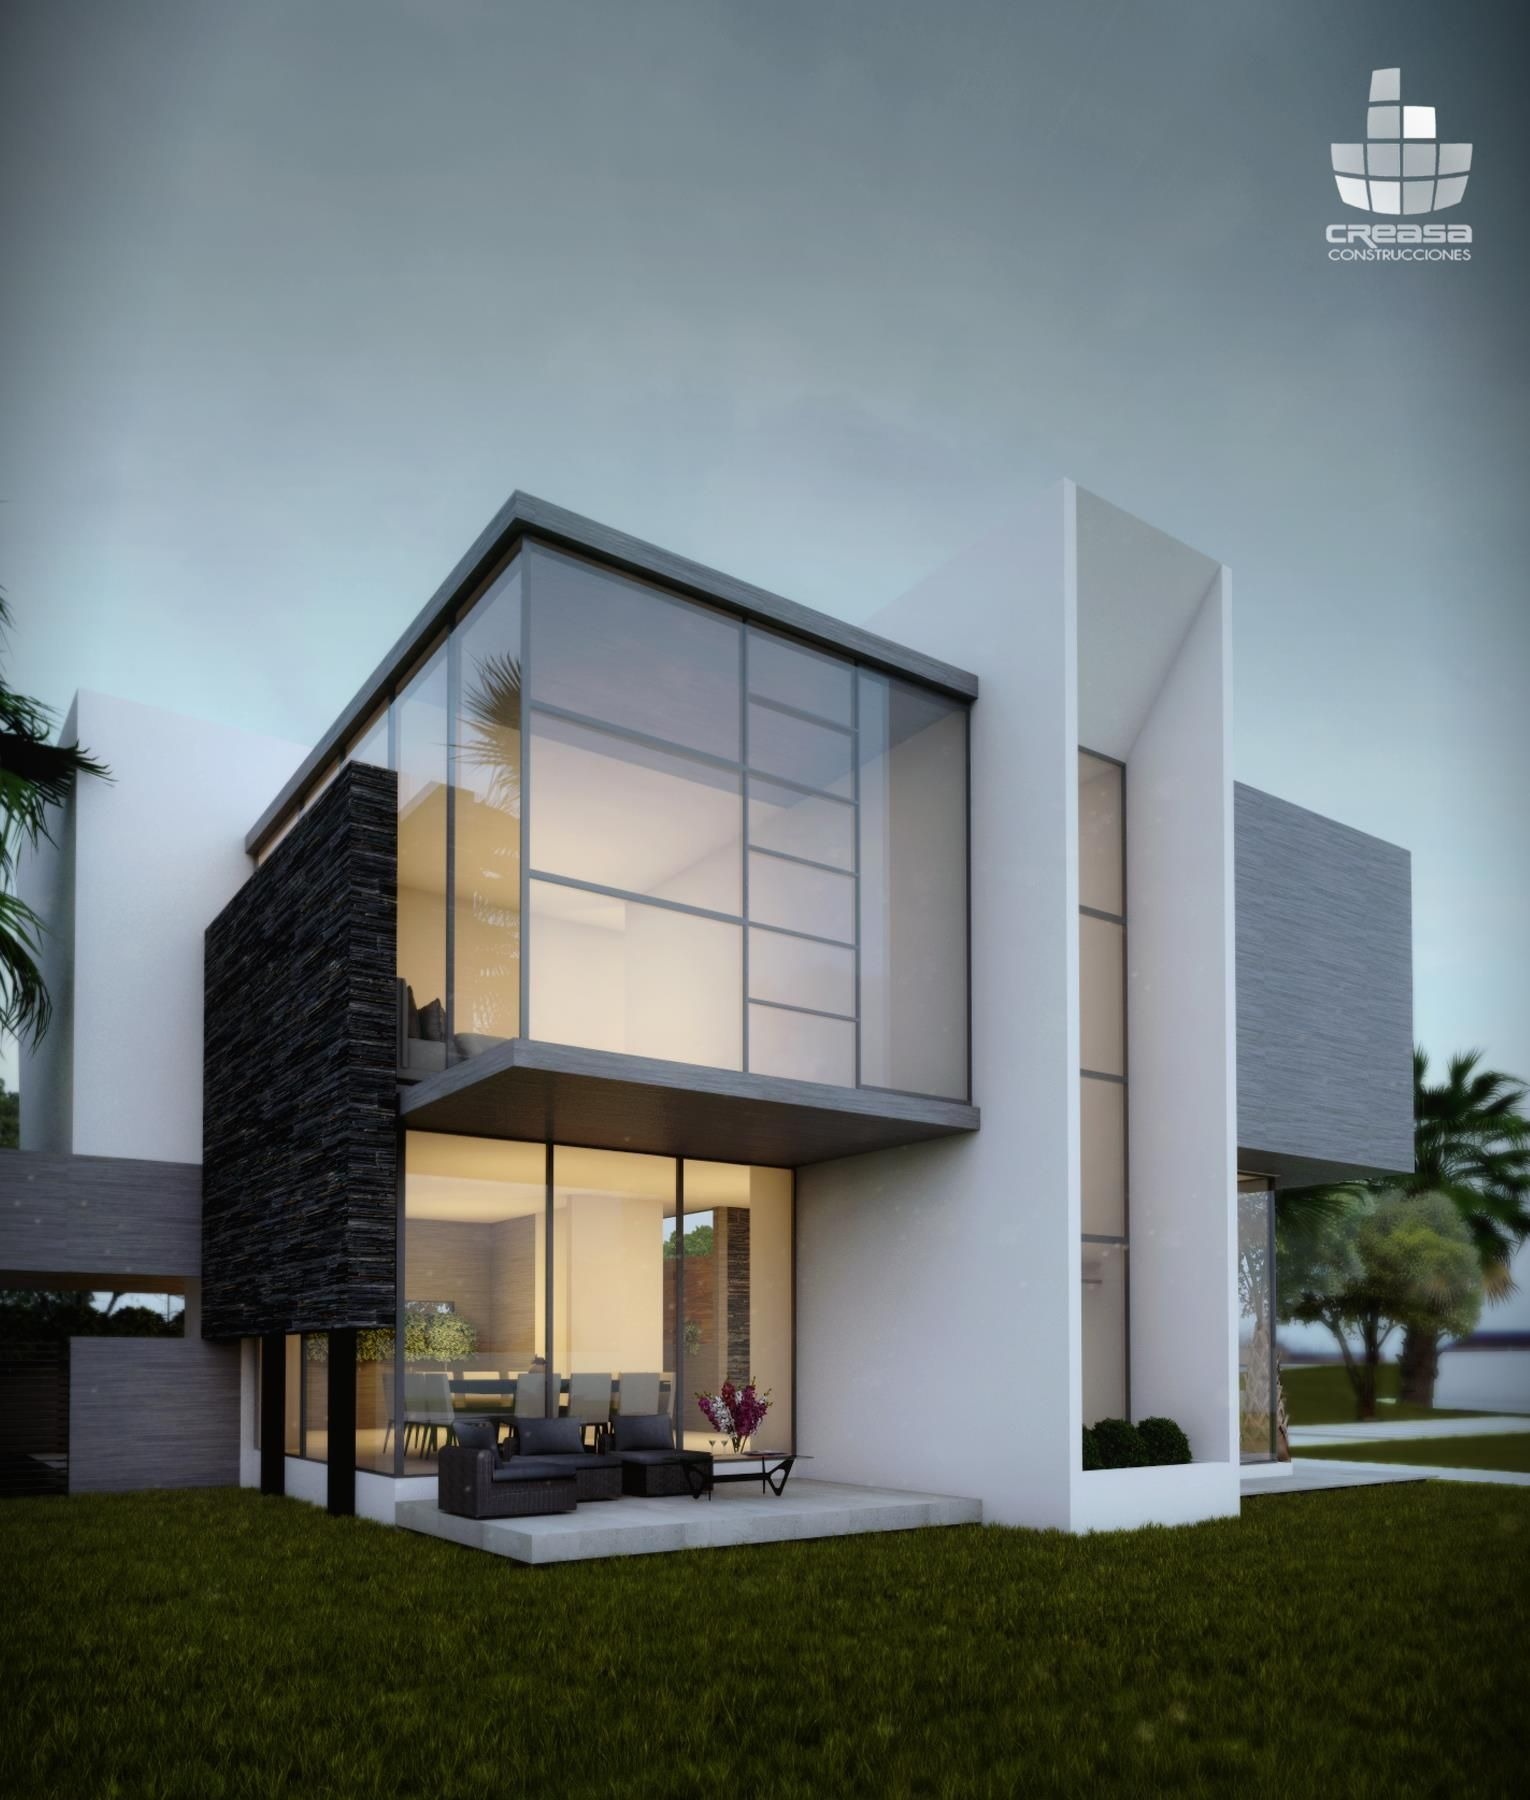 Creasa modern architecture pinterest villas house for Modern villa architecture design